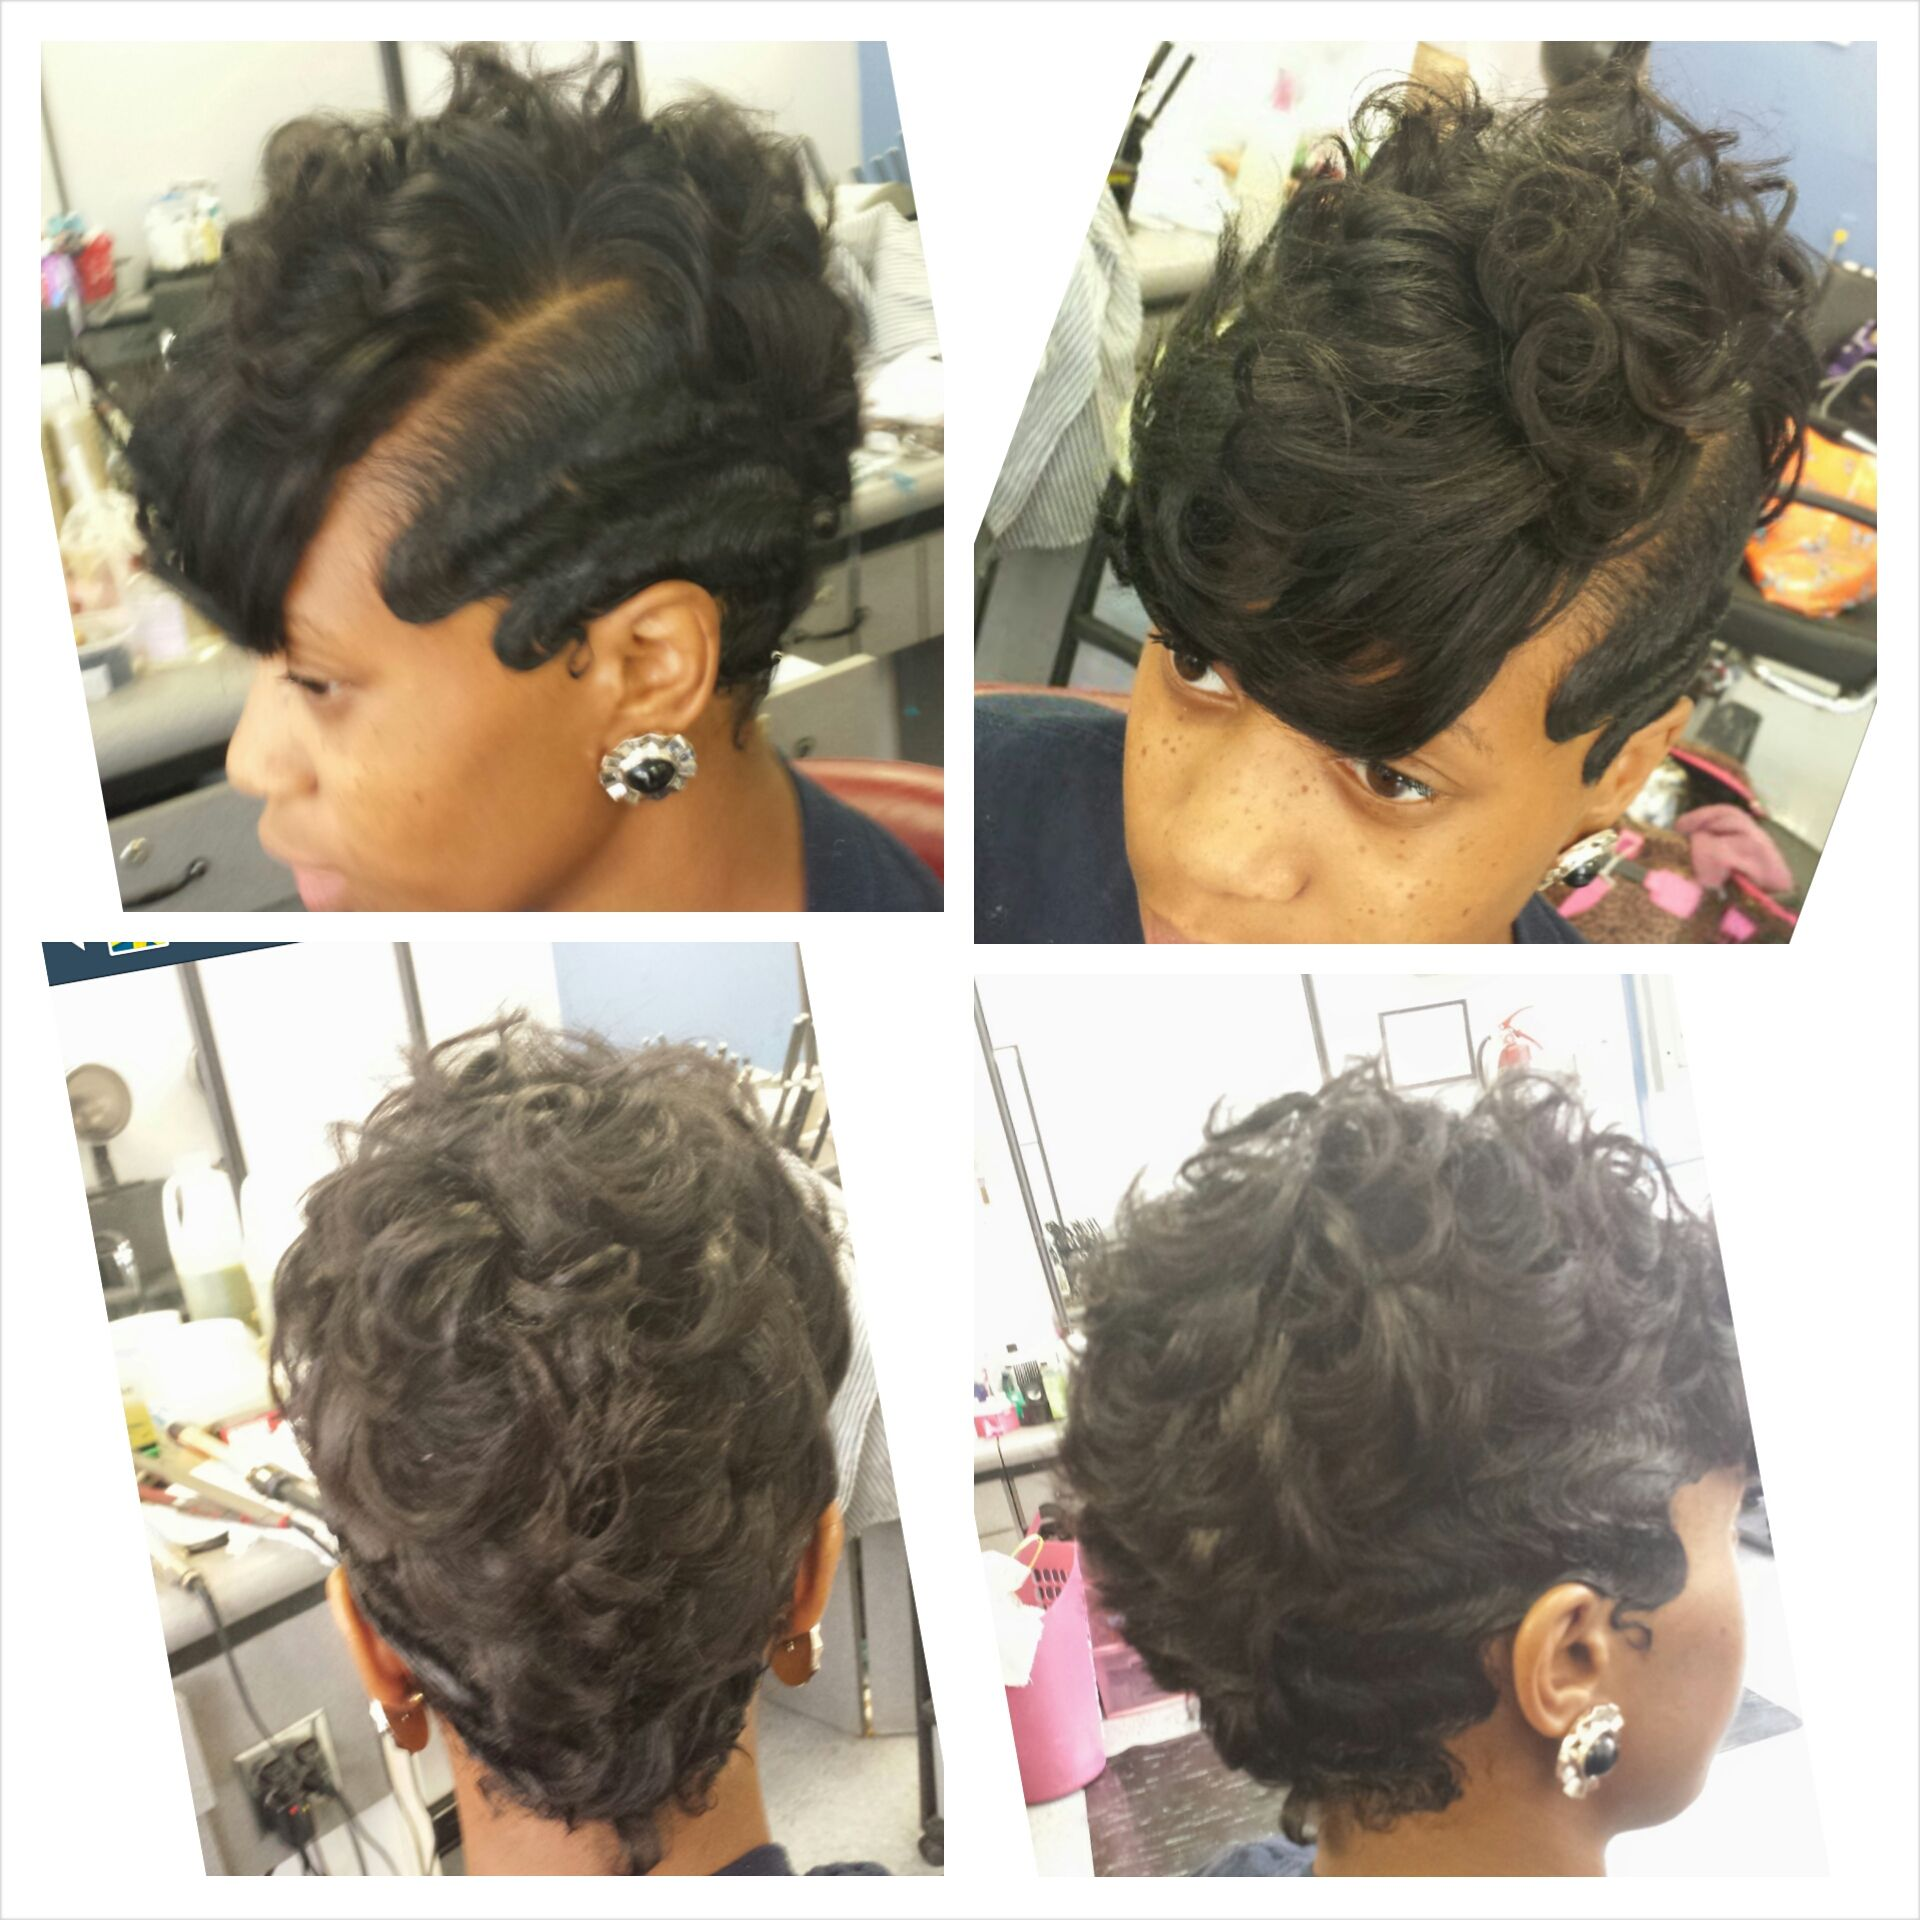 Admirable 1000 Images About Hair On Pinterest Finger Waves Bobs And Hairstyle Inspiration Daily Dogsangcom